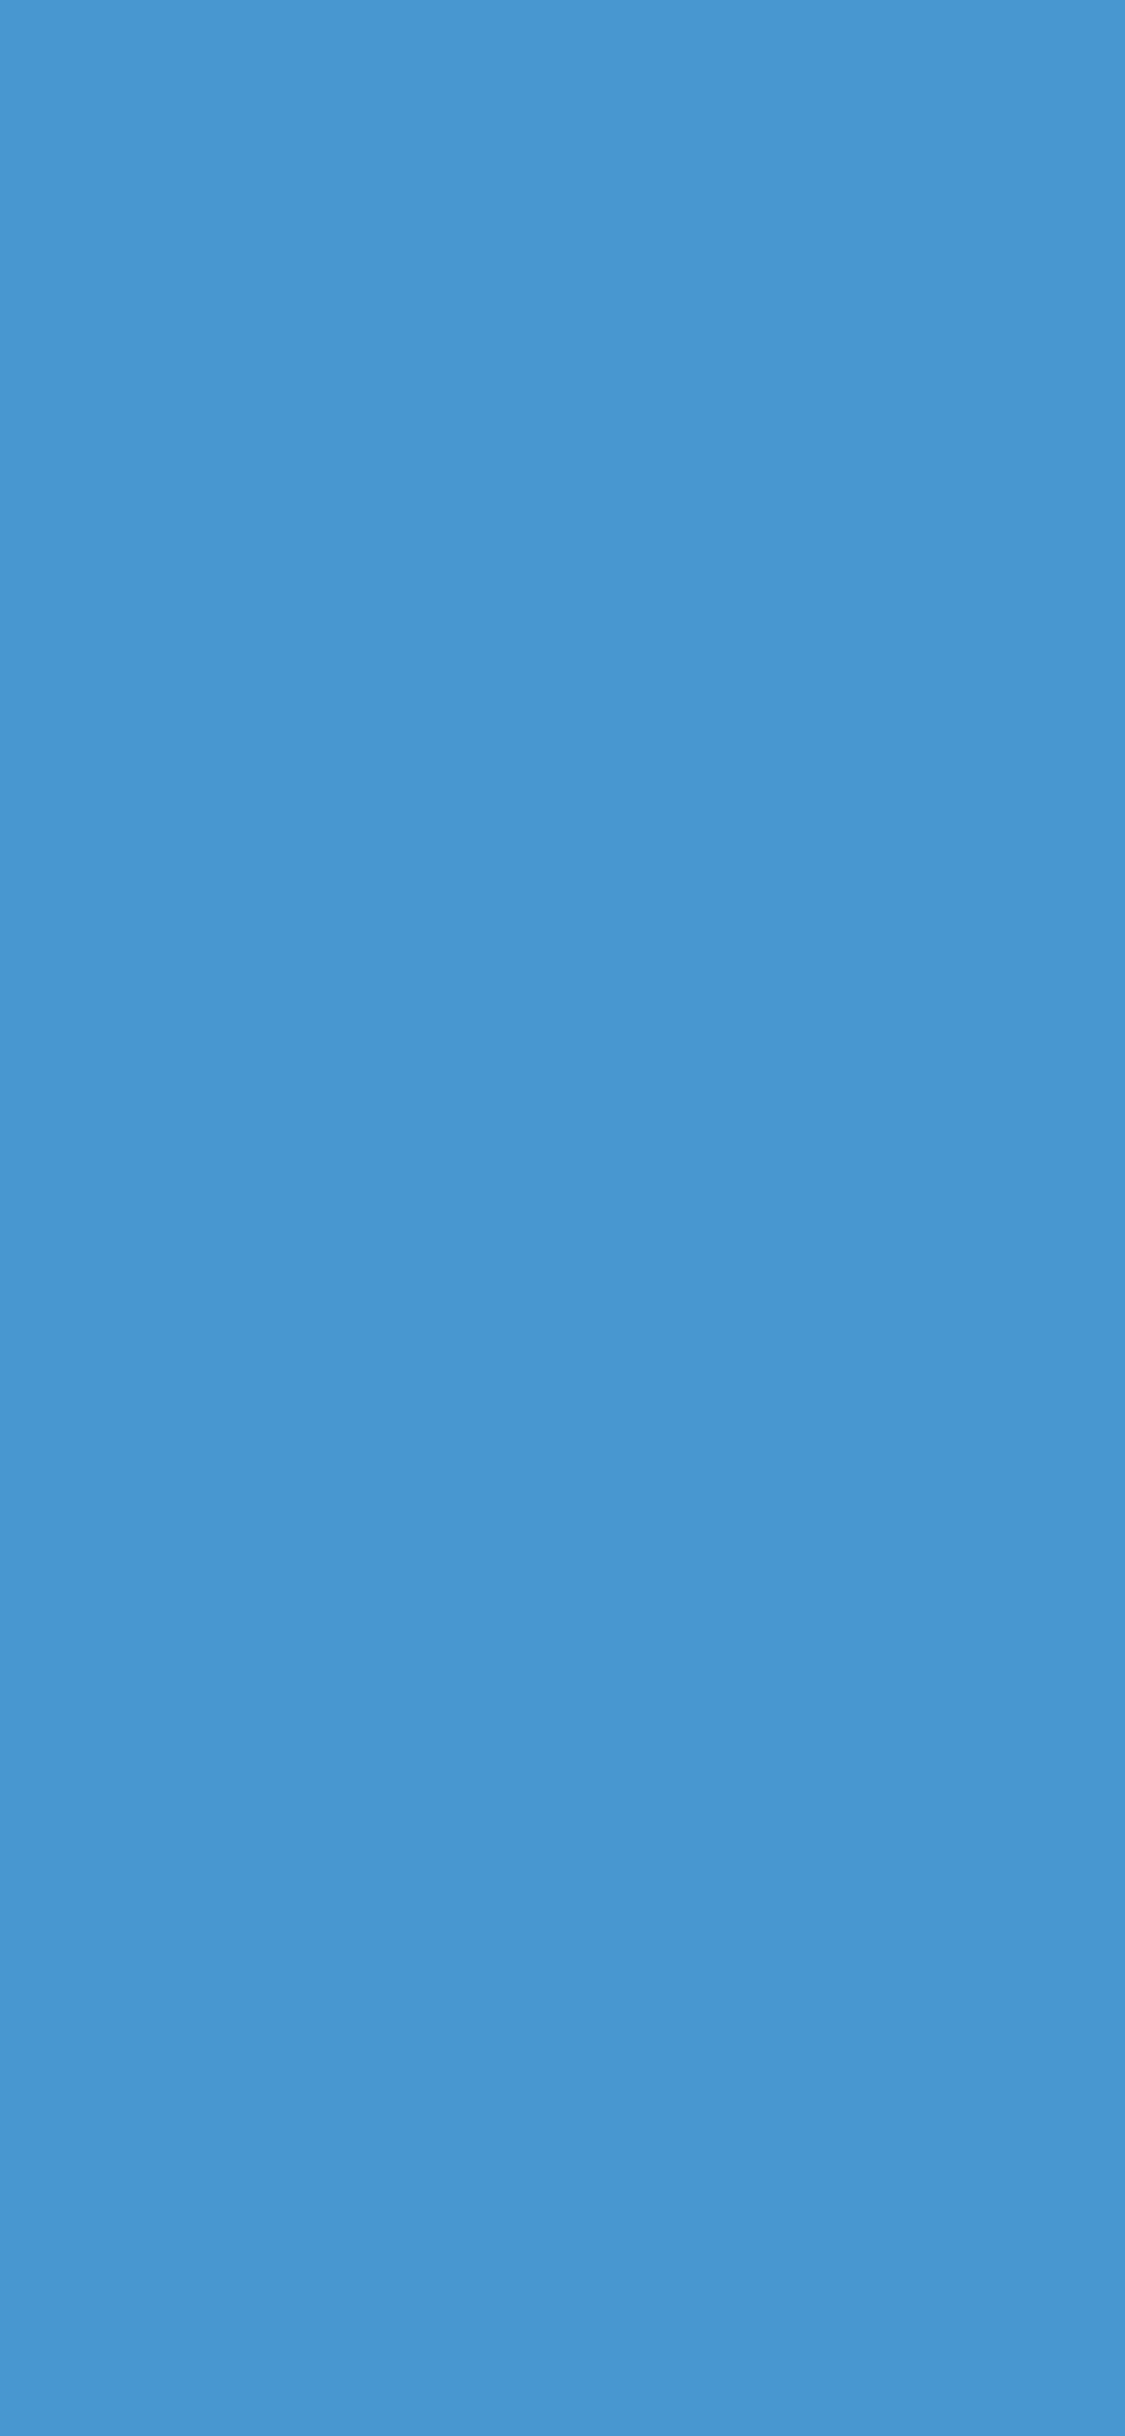 1125x2436 Celestial Blue Solid Color Background